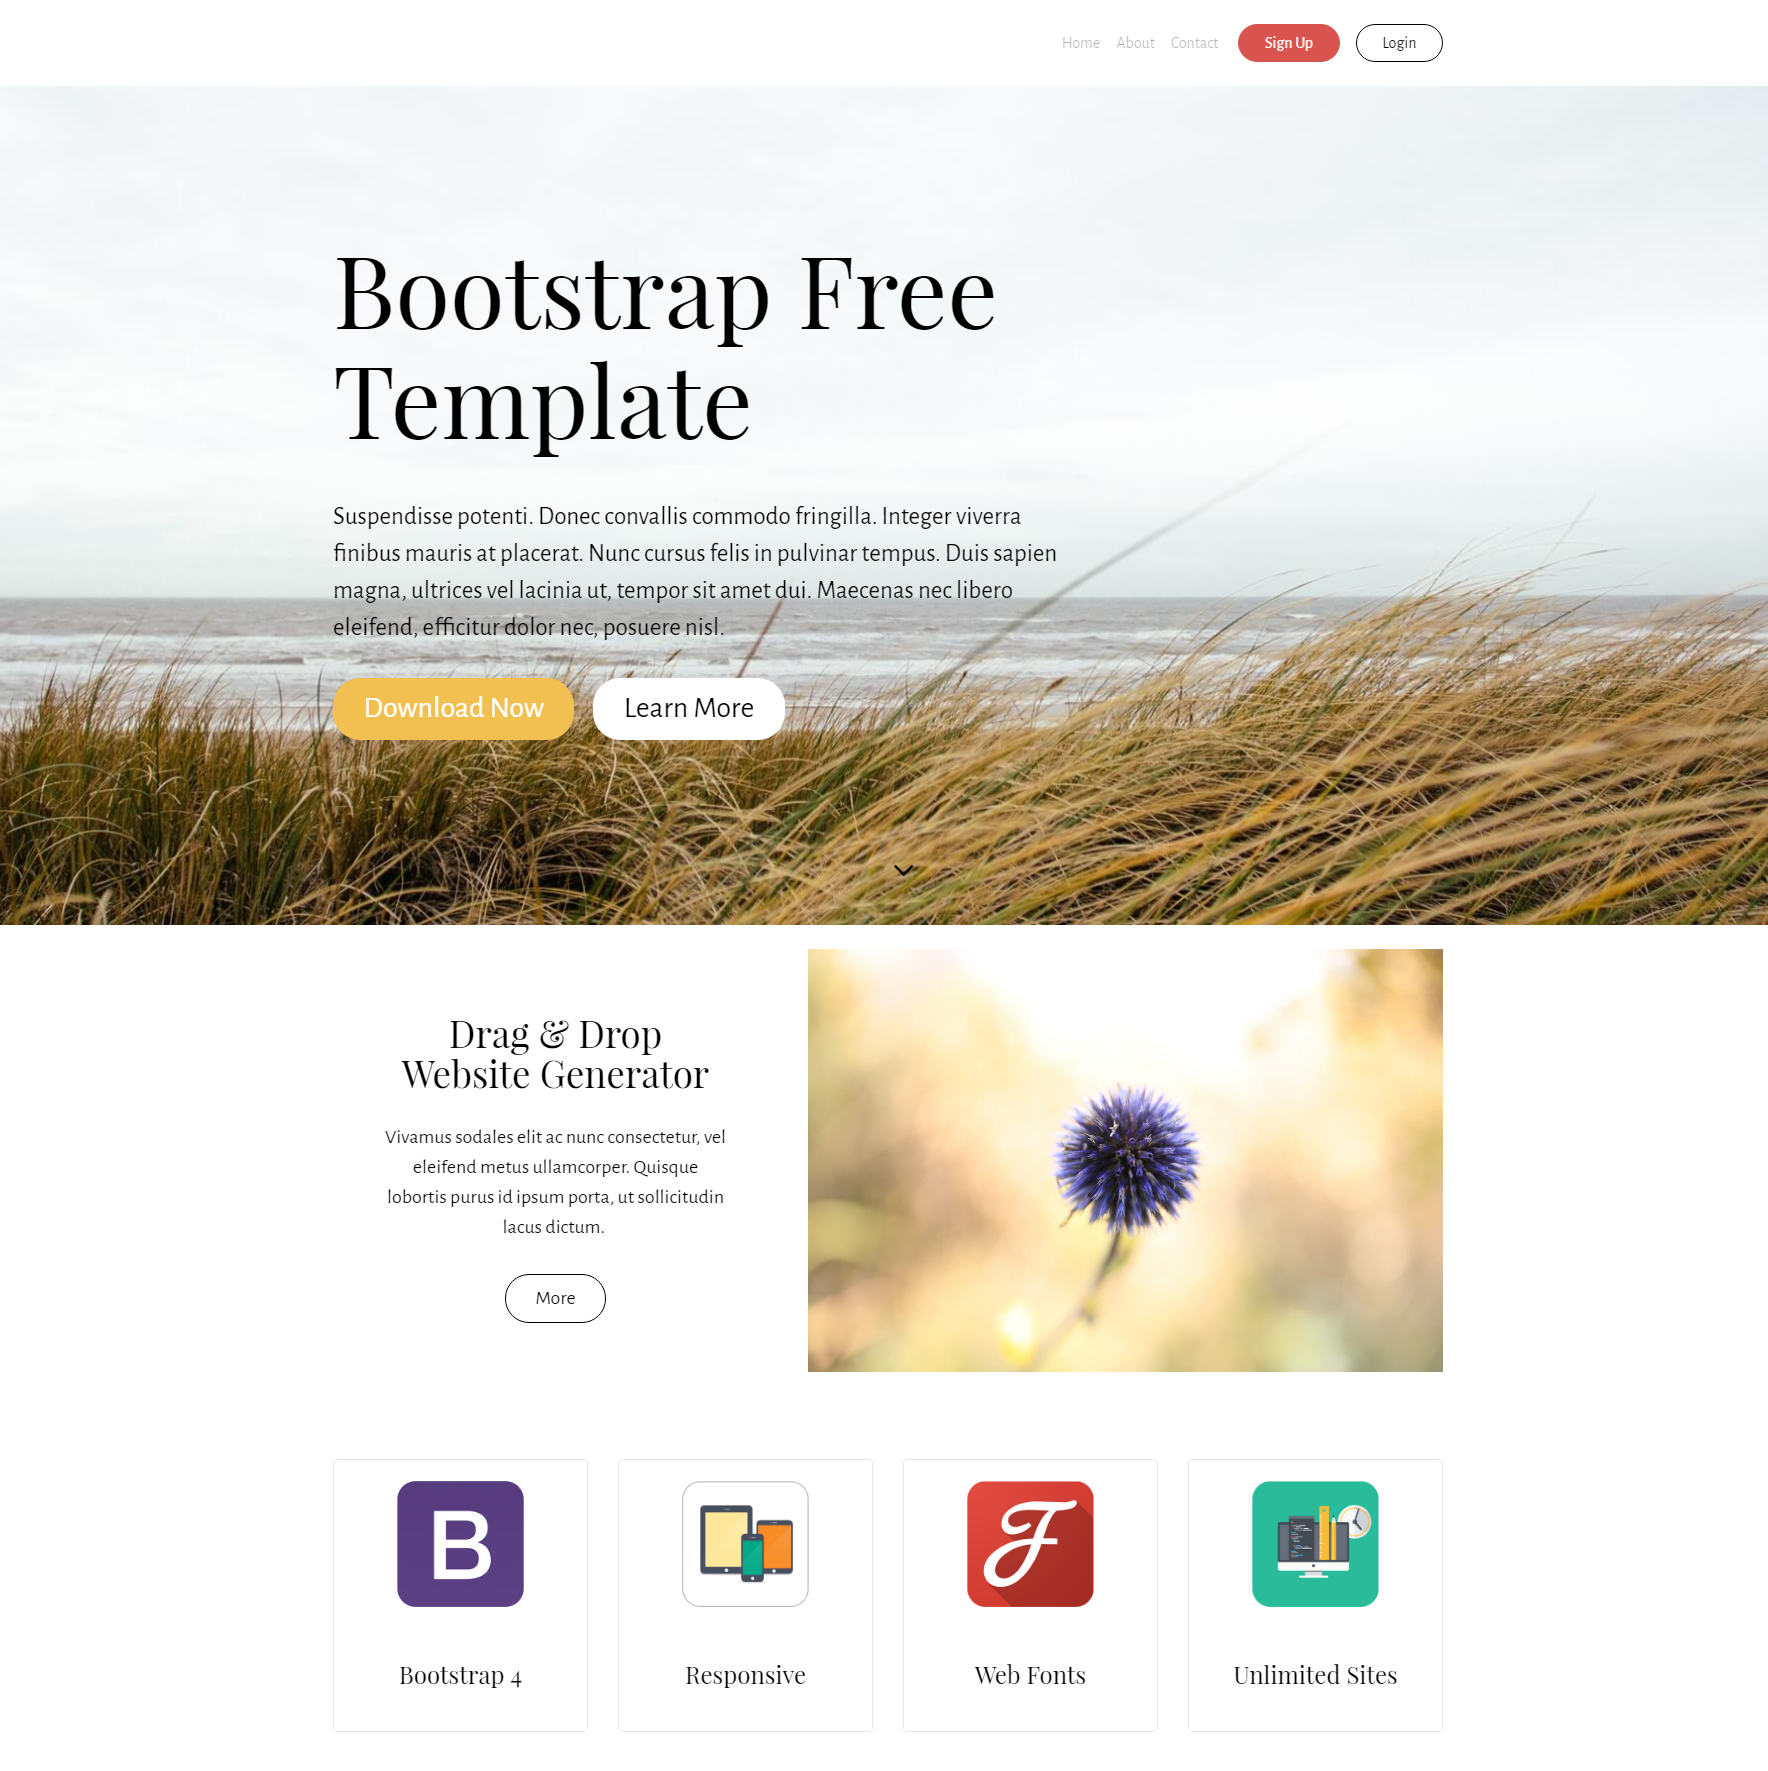 80+ Free Bootstrap Templates You Can't Miss in 2019